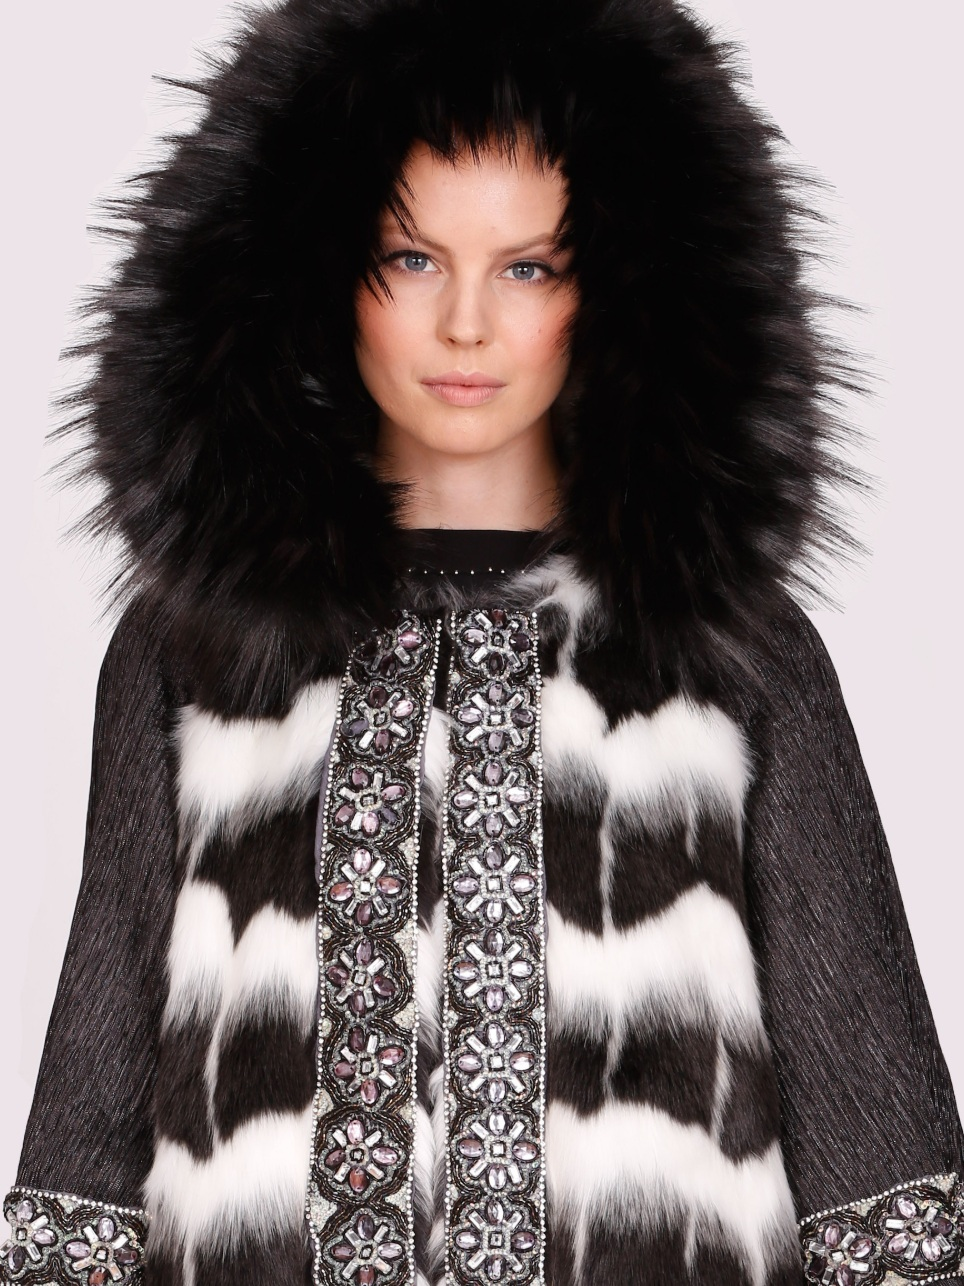 PelushNYC - The Pelush concept has been created to reposition and transform the boundaries of the faux fur world; a ReFAUXlution. Through meticulous research and the selection of the finest Italian fabrics, and the best man-made pelage, each coat is carefully crafted to create a luxurious and elegant experience.A cruelty-free product, Pelush is a wonderful alternative for the modern woman in search of glamour, comfort, and the warmth of a plush coat.